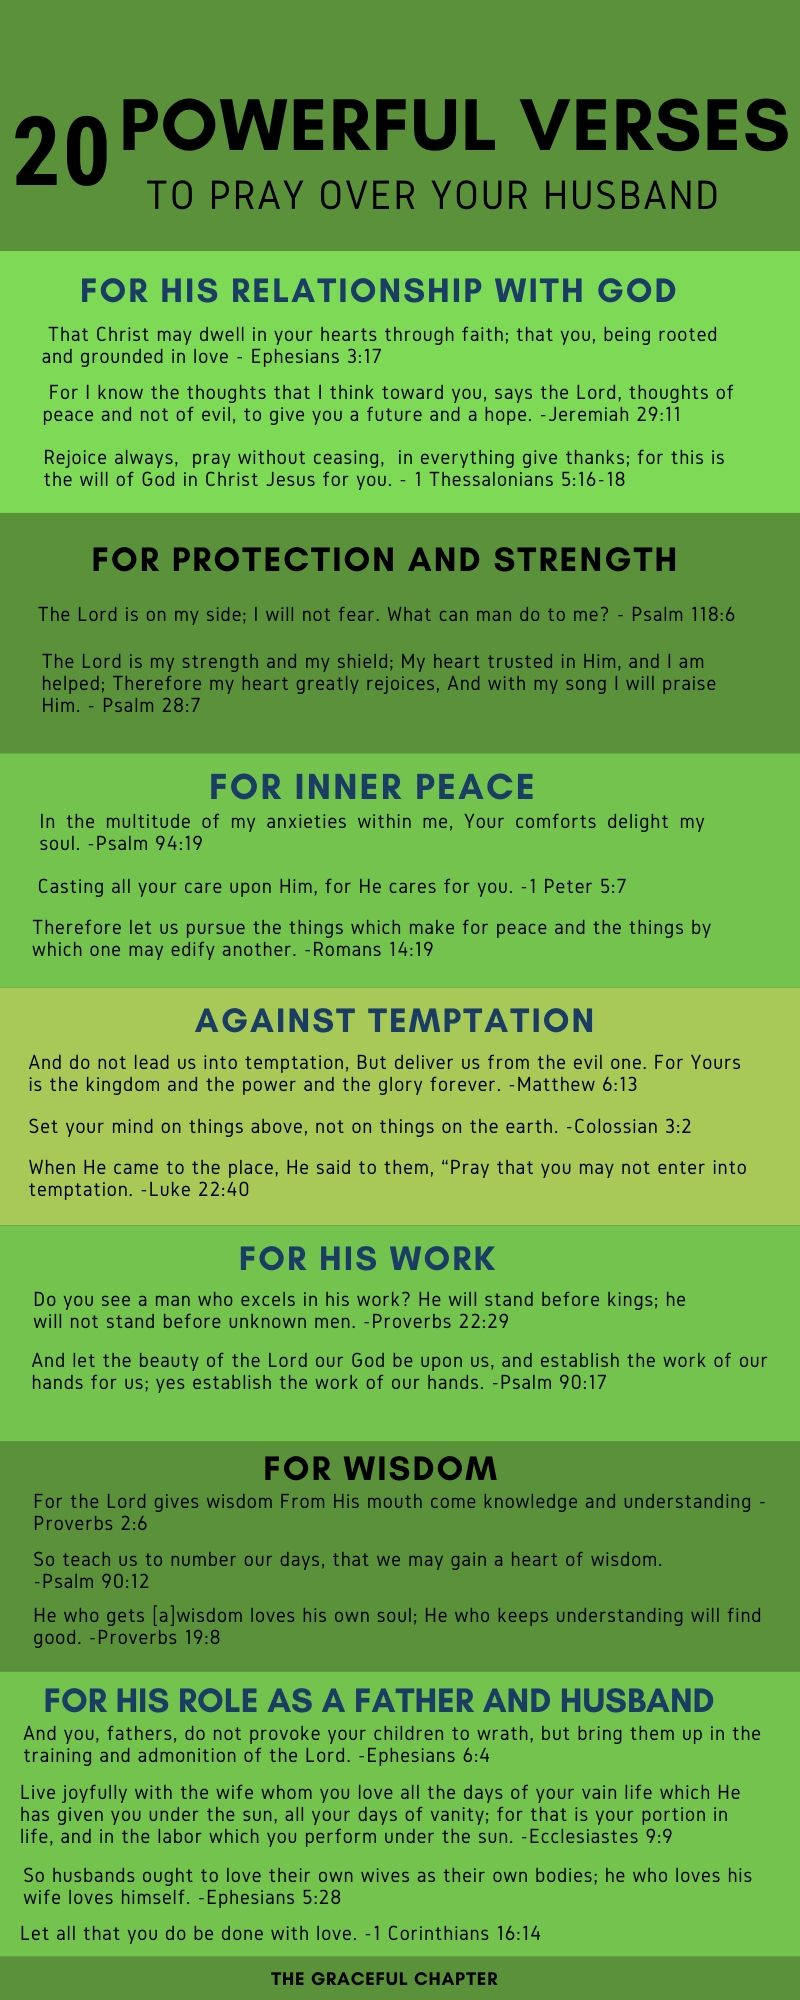 20 powerful verses to pray over your husband